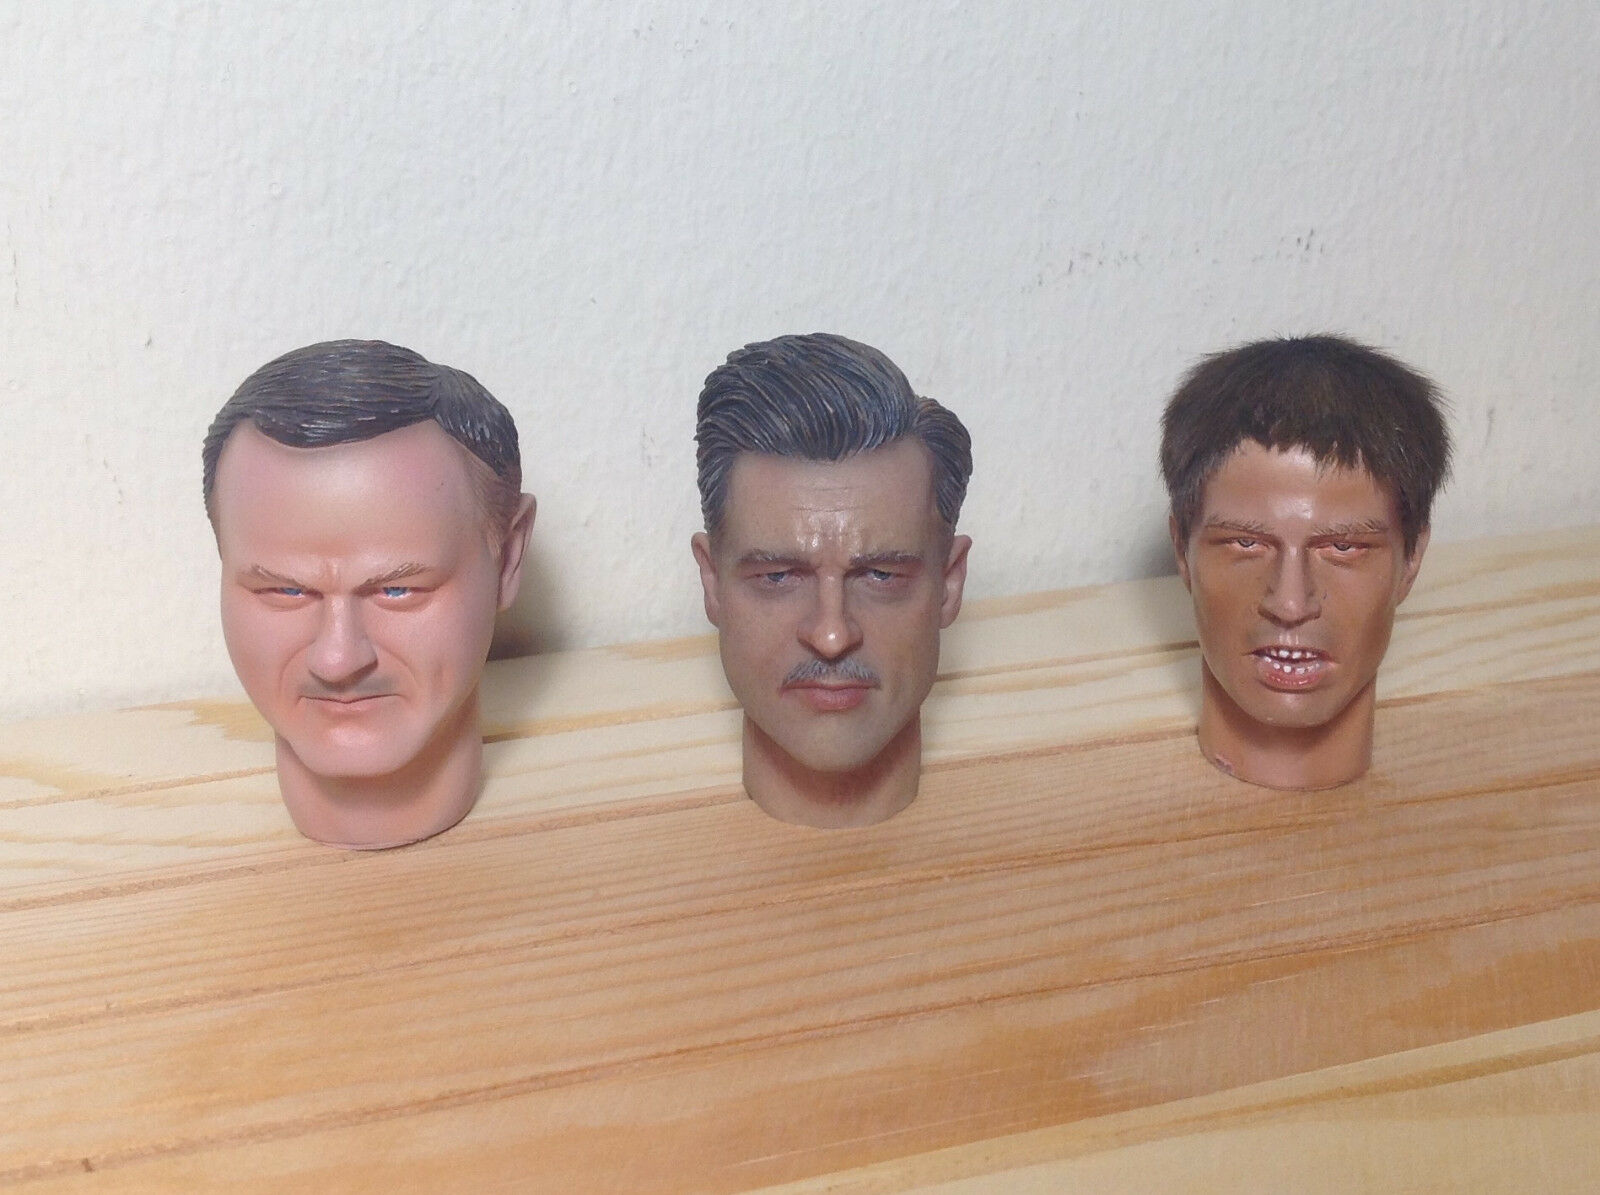 Lot of 3 heads in scale 1:6 for action HEADS ONLY AS PHOTO